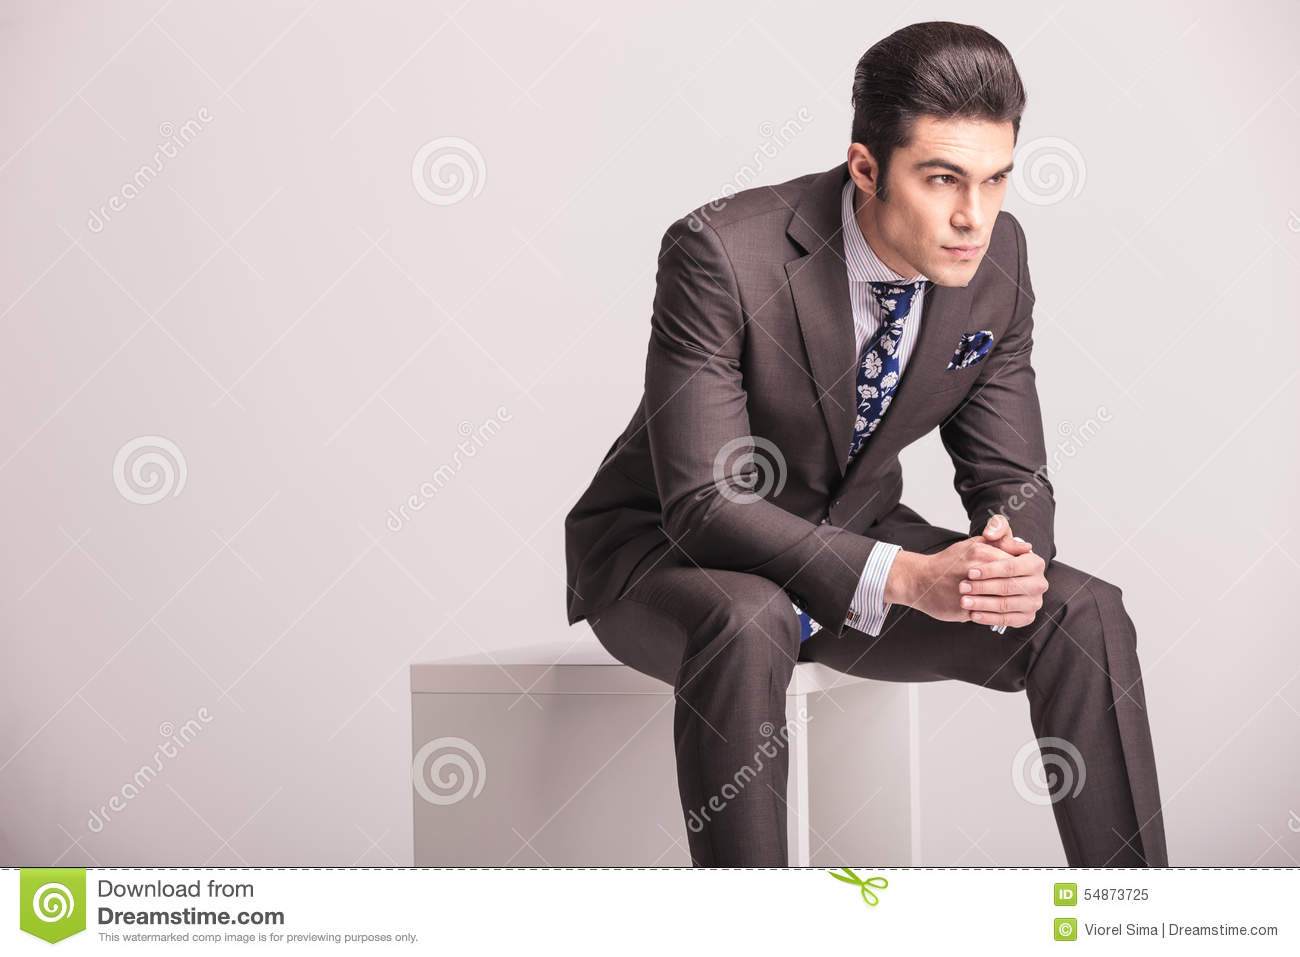 Man sitting in chair side - Business Chair Hands Handsome Man Modern Side Sitting